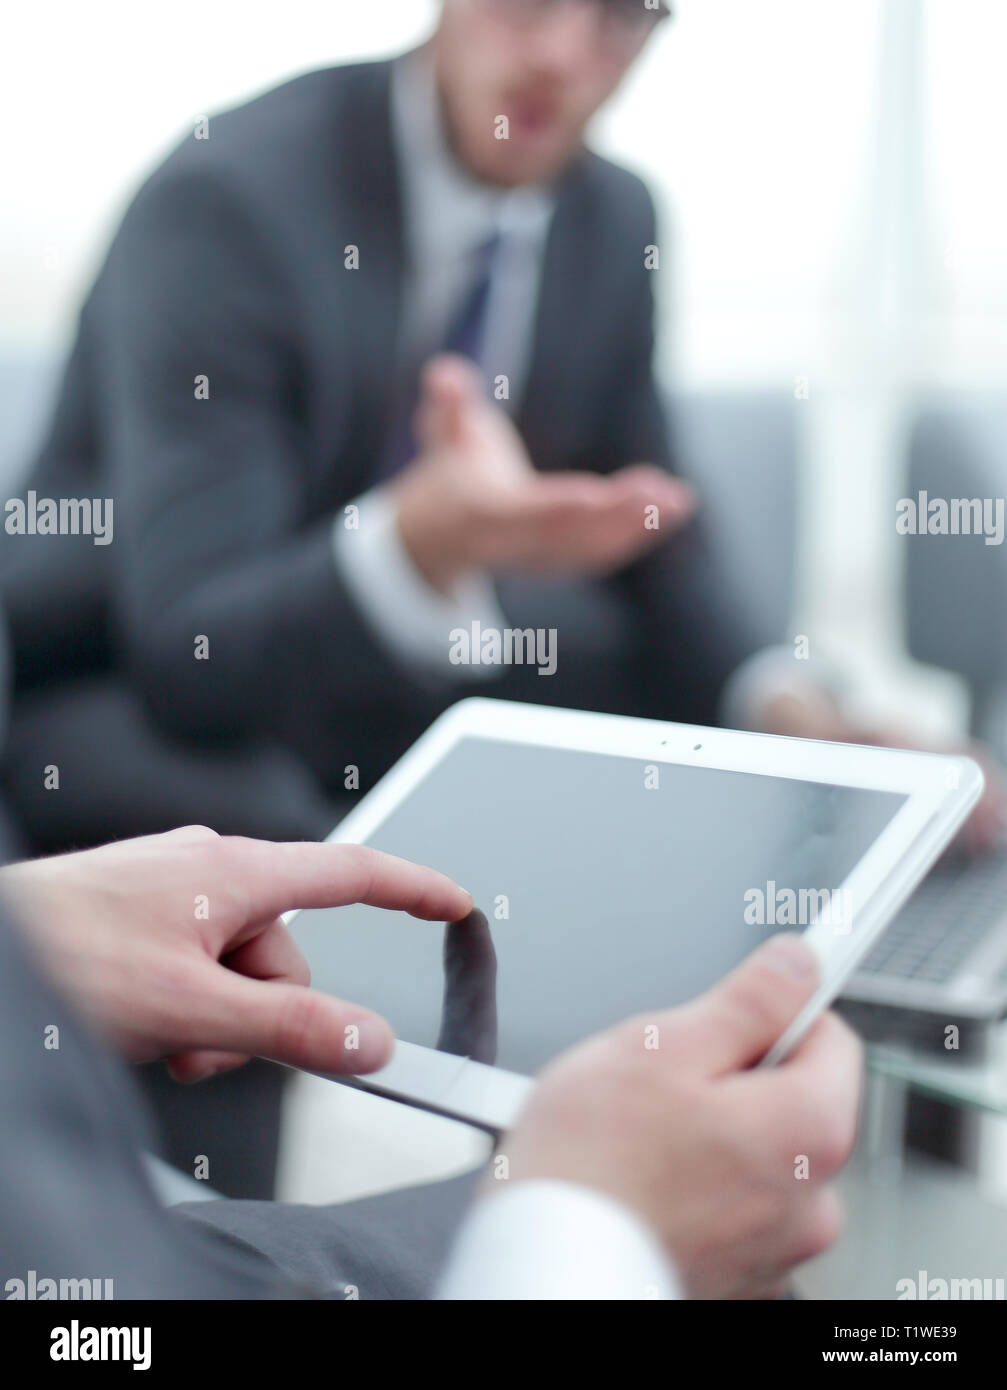 close up.businessman tapping the screen of the digital tablet - Stock Image